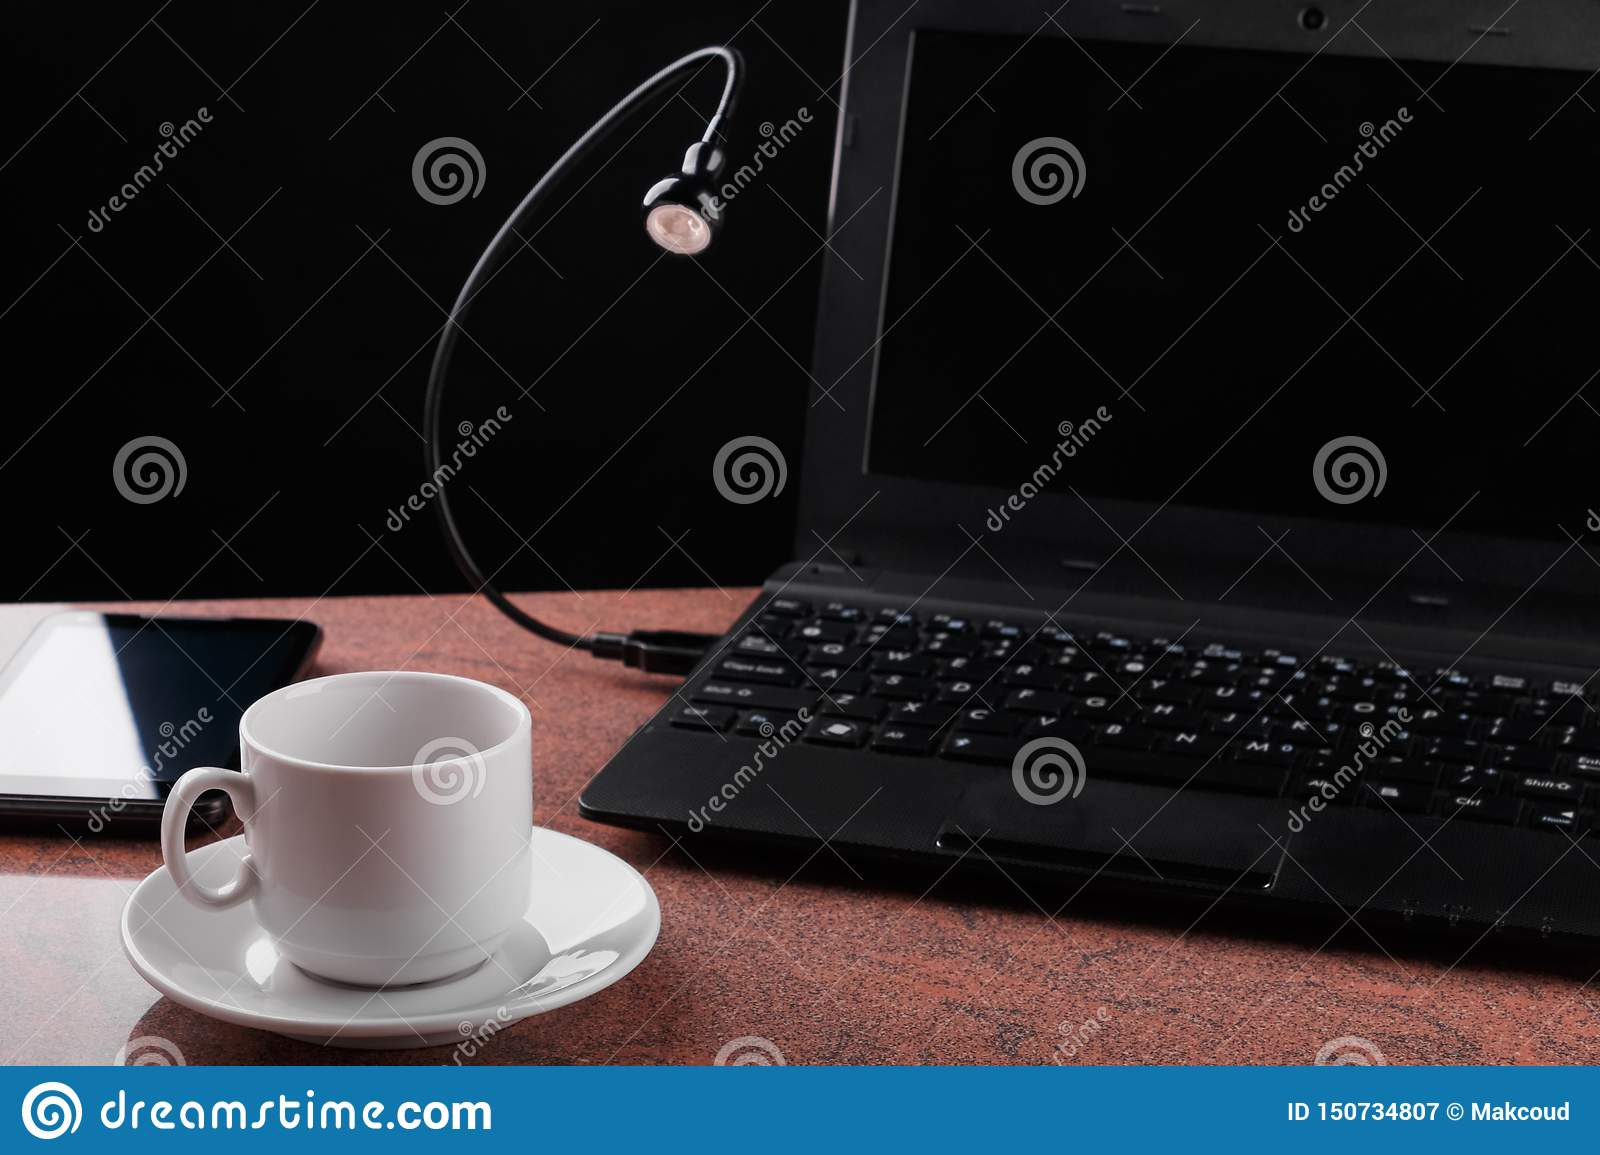 Led Usb Lamp Connected To Laptop And Looking At Coffee Cup